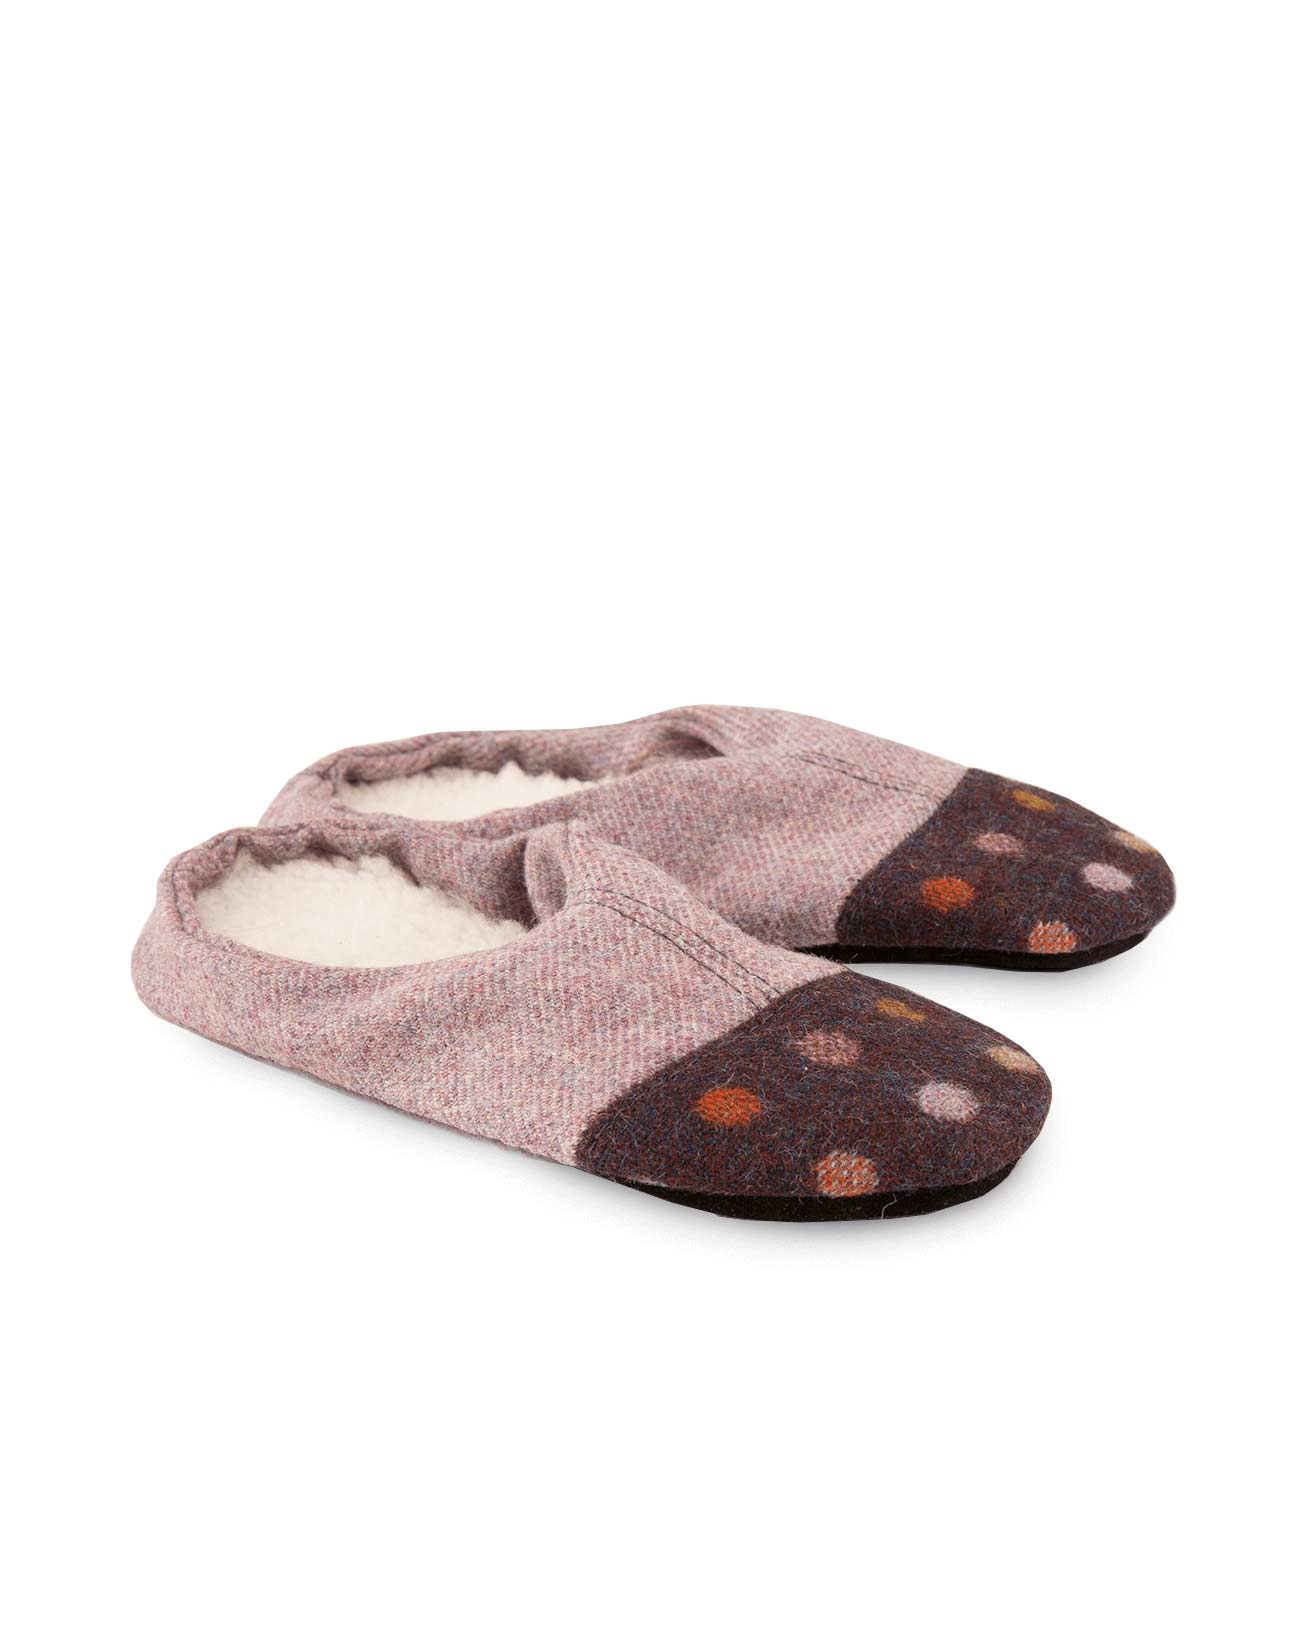 Hotchpotch Slipper - Medium - Purple - 305